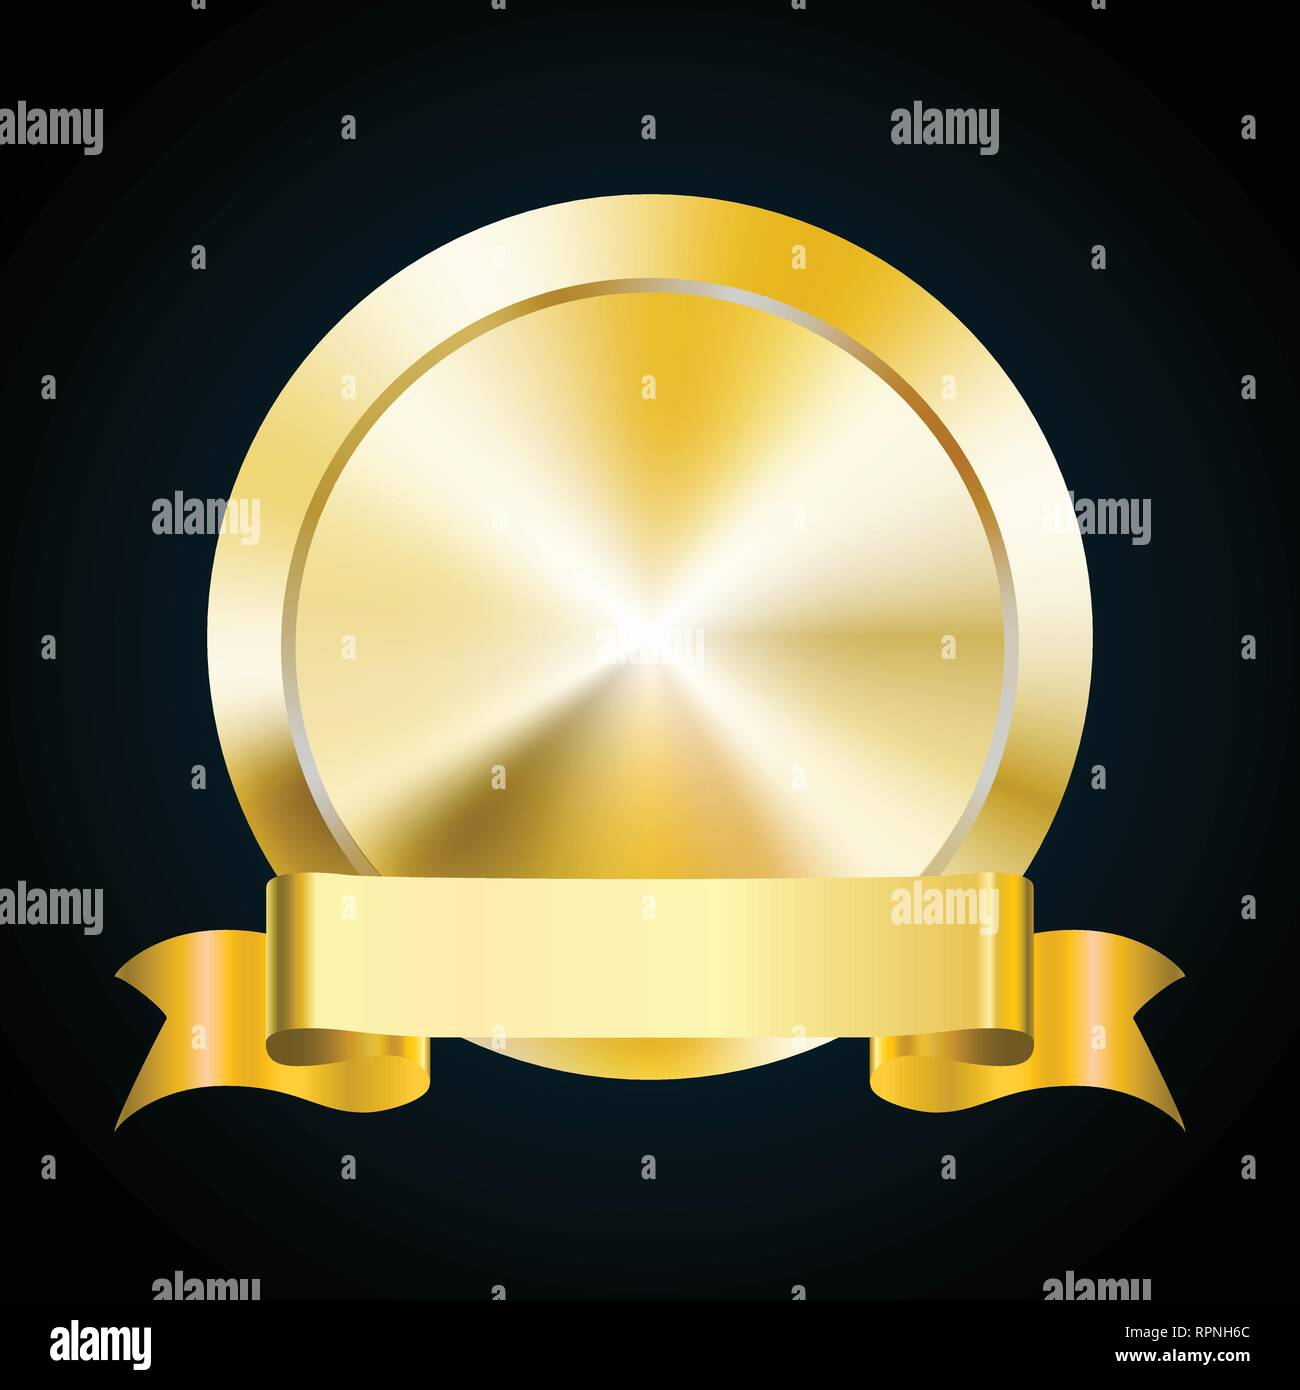 Blank Gold Medal Token And Ribbon Banner Vector Illustration Of Award Stock Vector Image Art Alamy